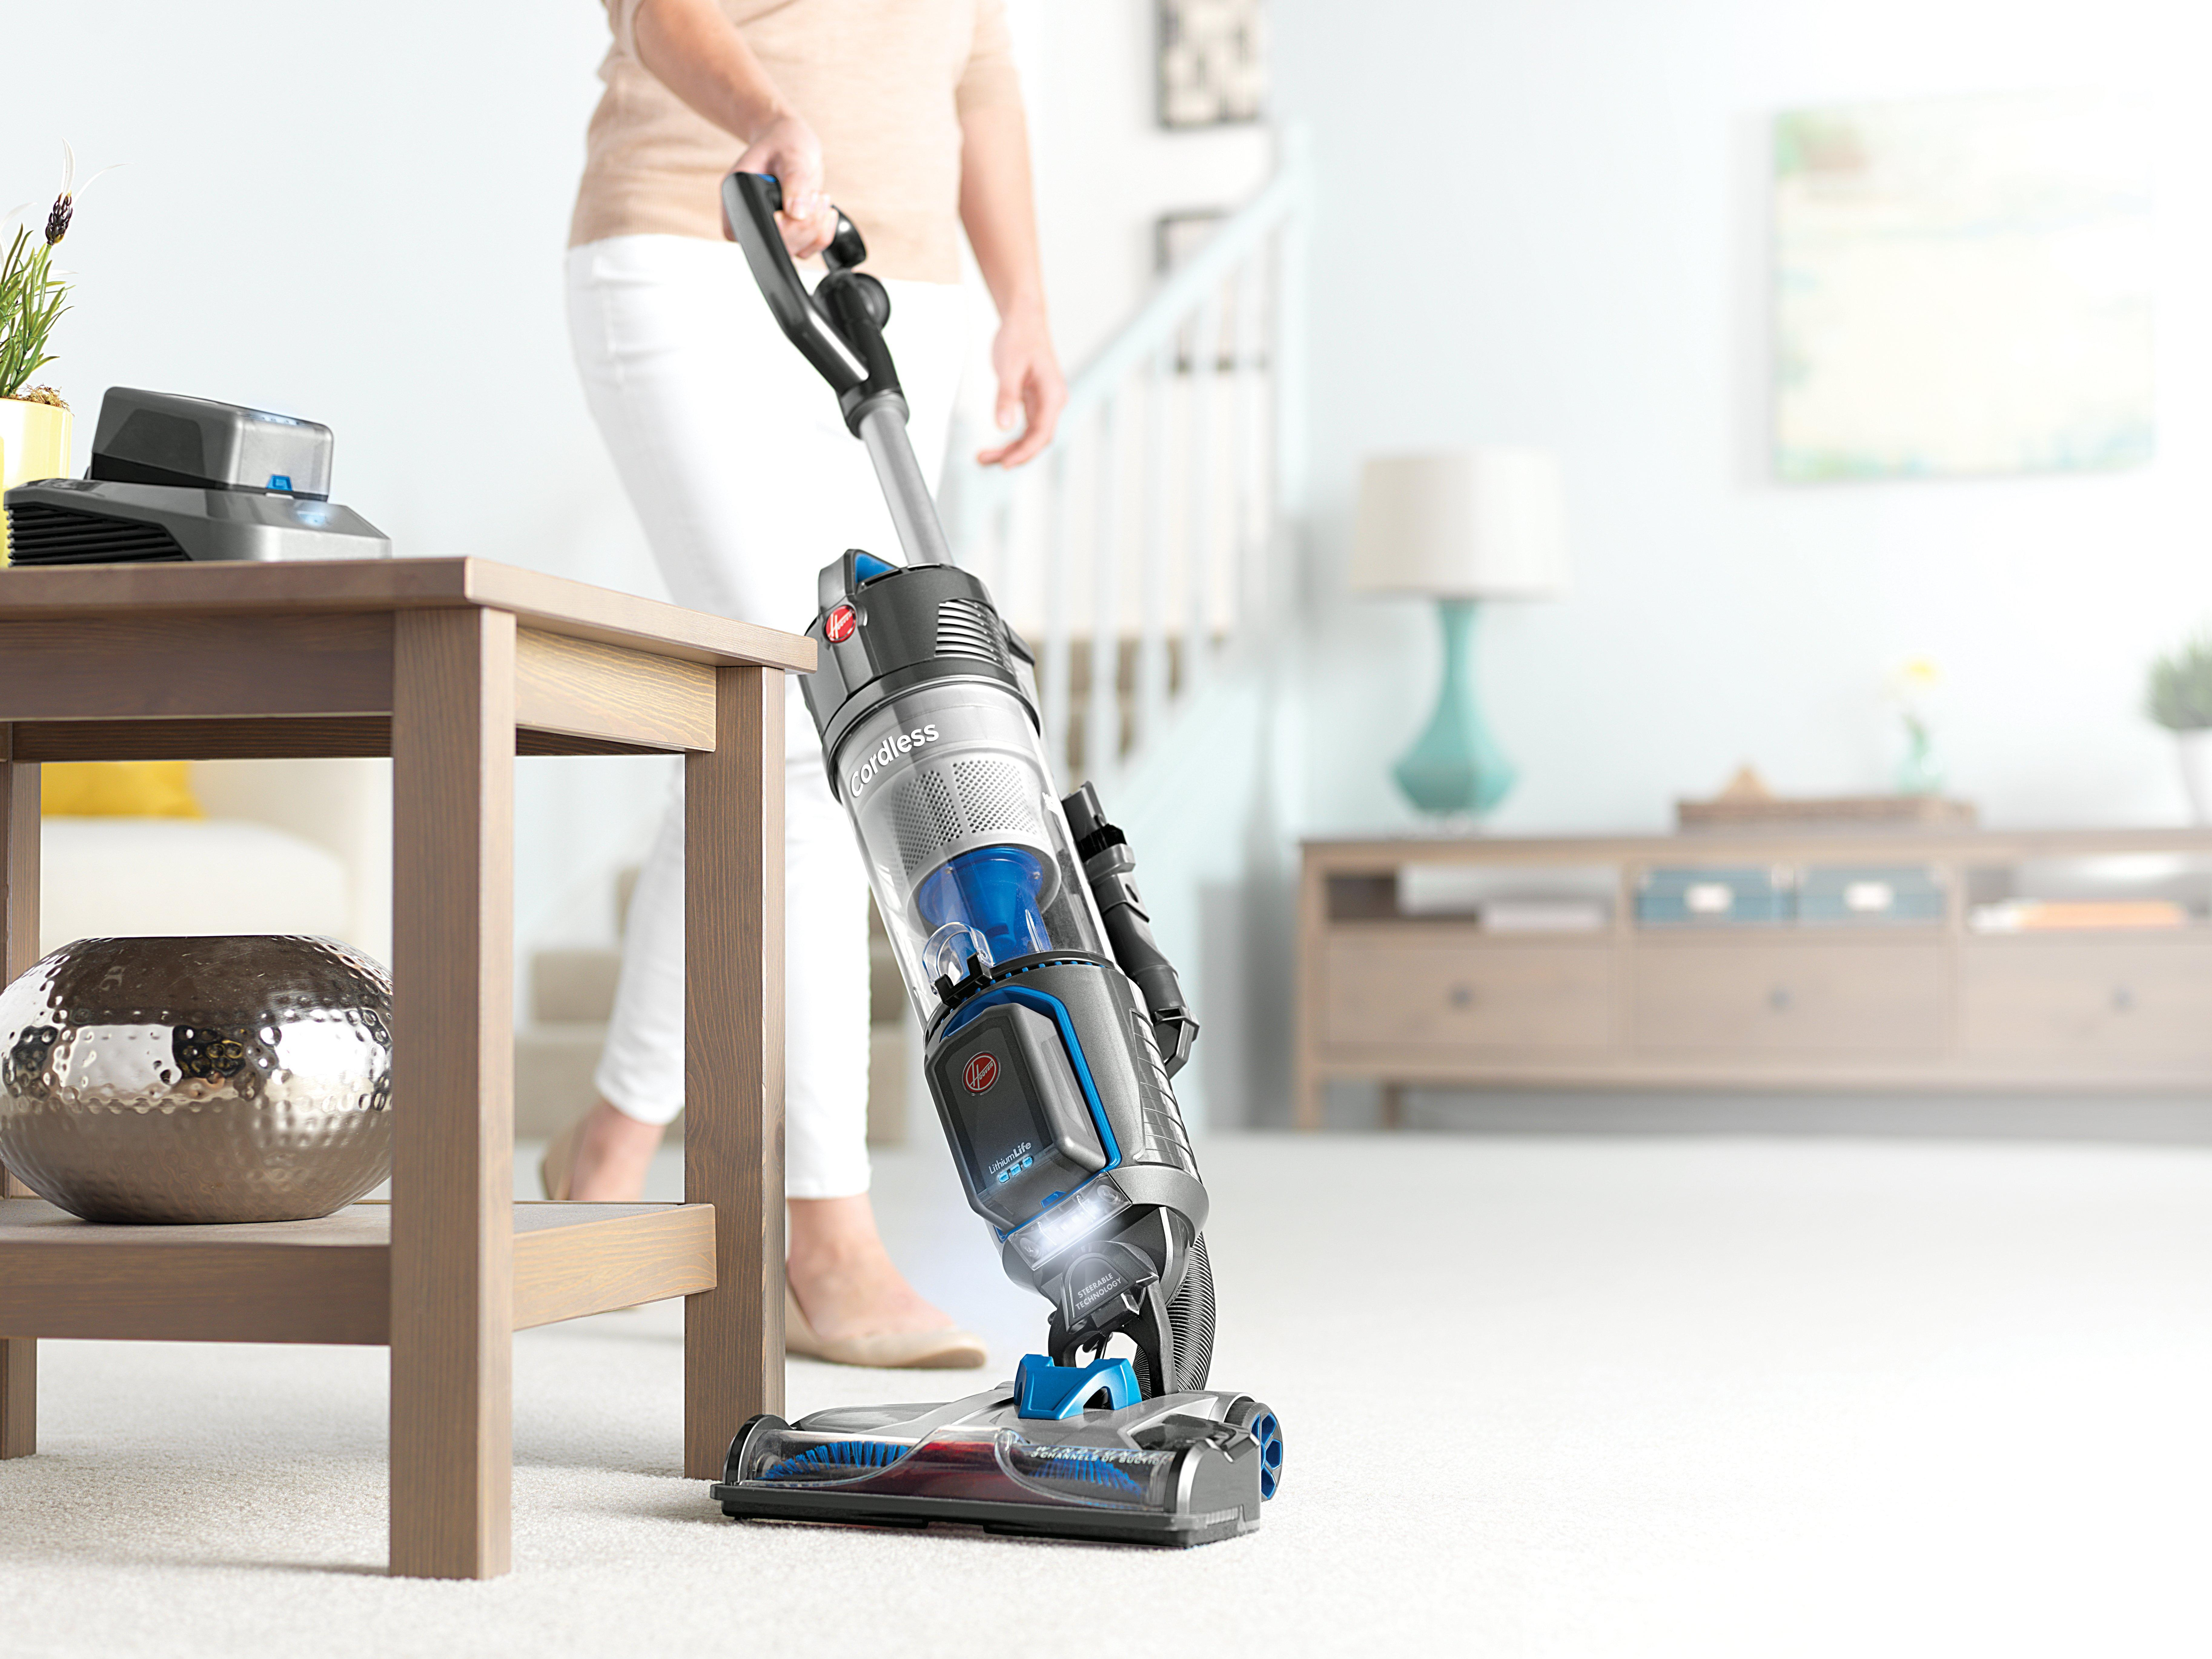 Hoover Air Cordless Bagless Upright Vacuum Cleaner Series